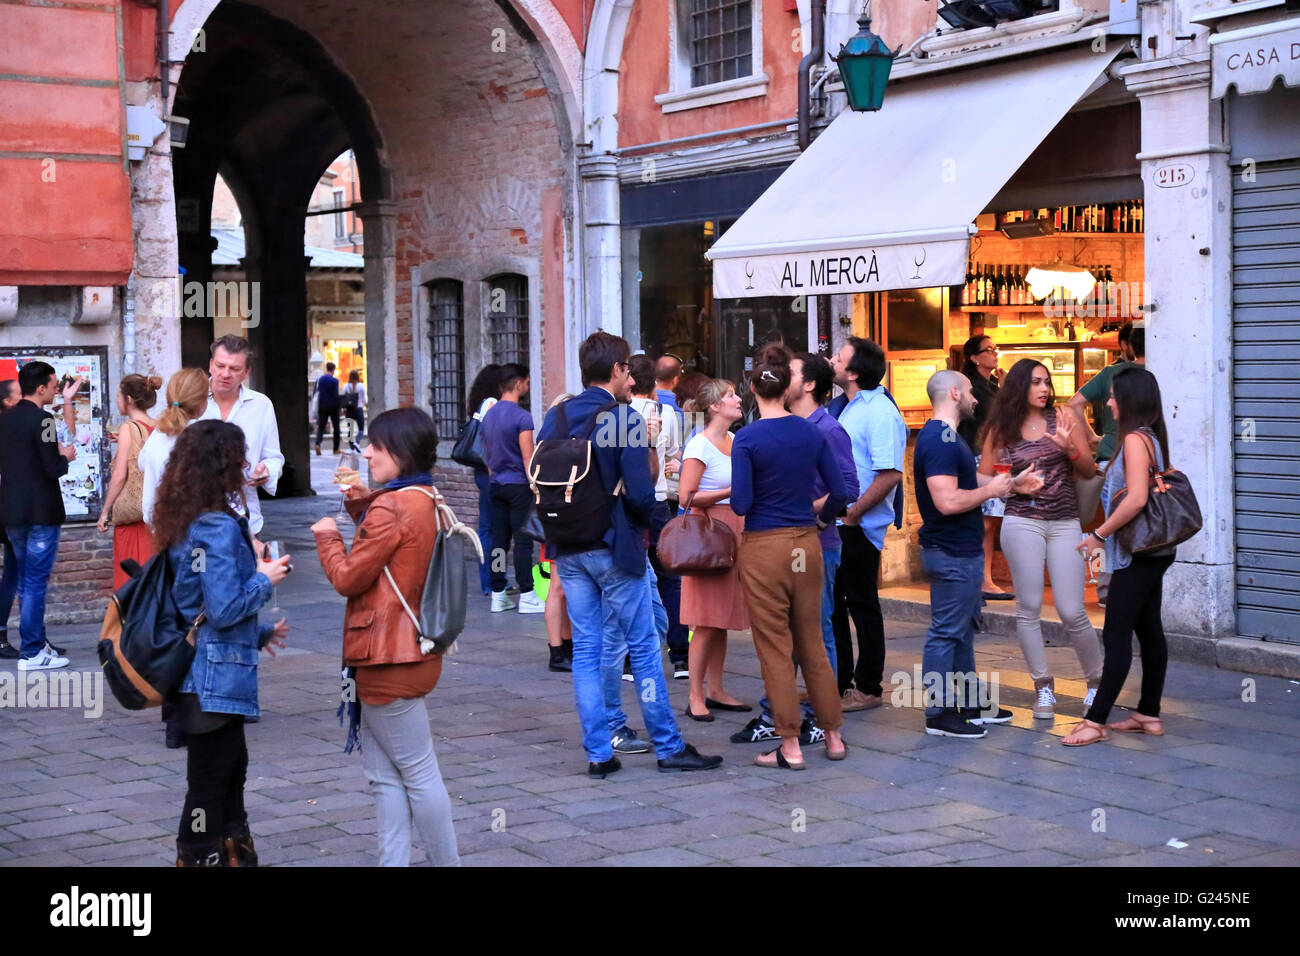 Cicchetti Wine Bar 'Al Merca' - Party nightlife in Venice - Stock Image